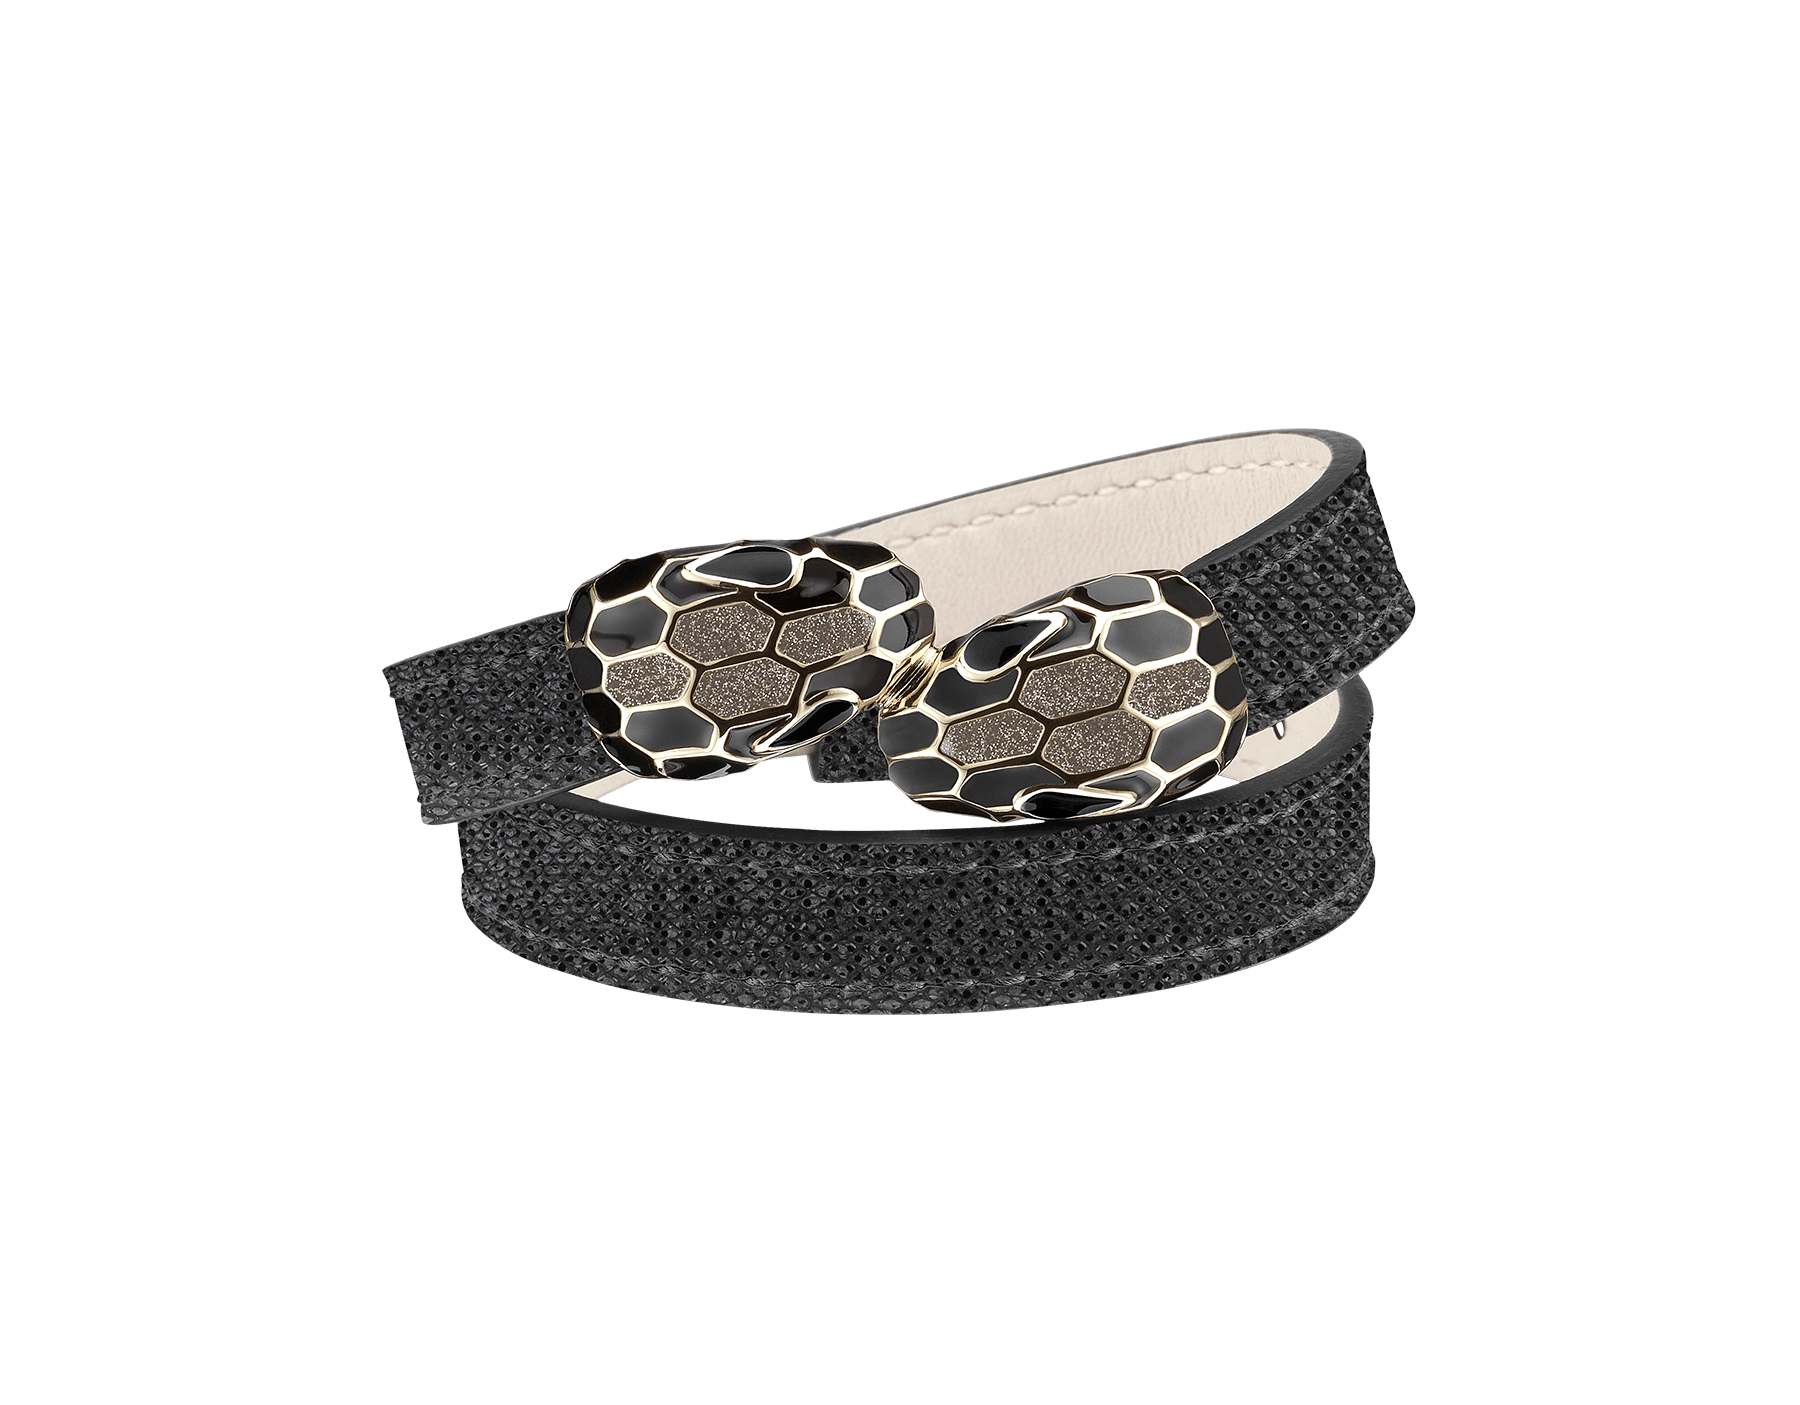 Multi-coiled bracelet in moon silver metallic karung skin. Brass light gold plated iconic contraire Serpenti heads in glitter silver and black enamel with black enamel eyes. MCSerp-MK-MS image 1